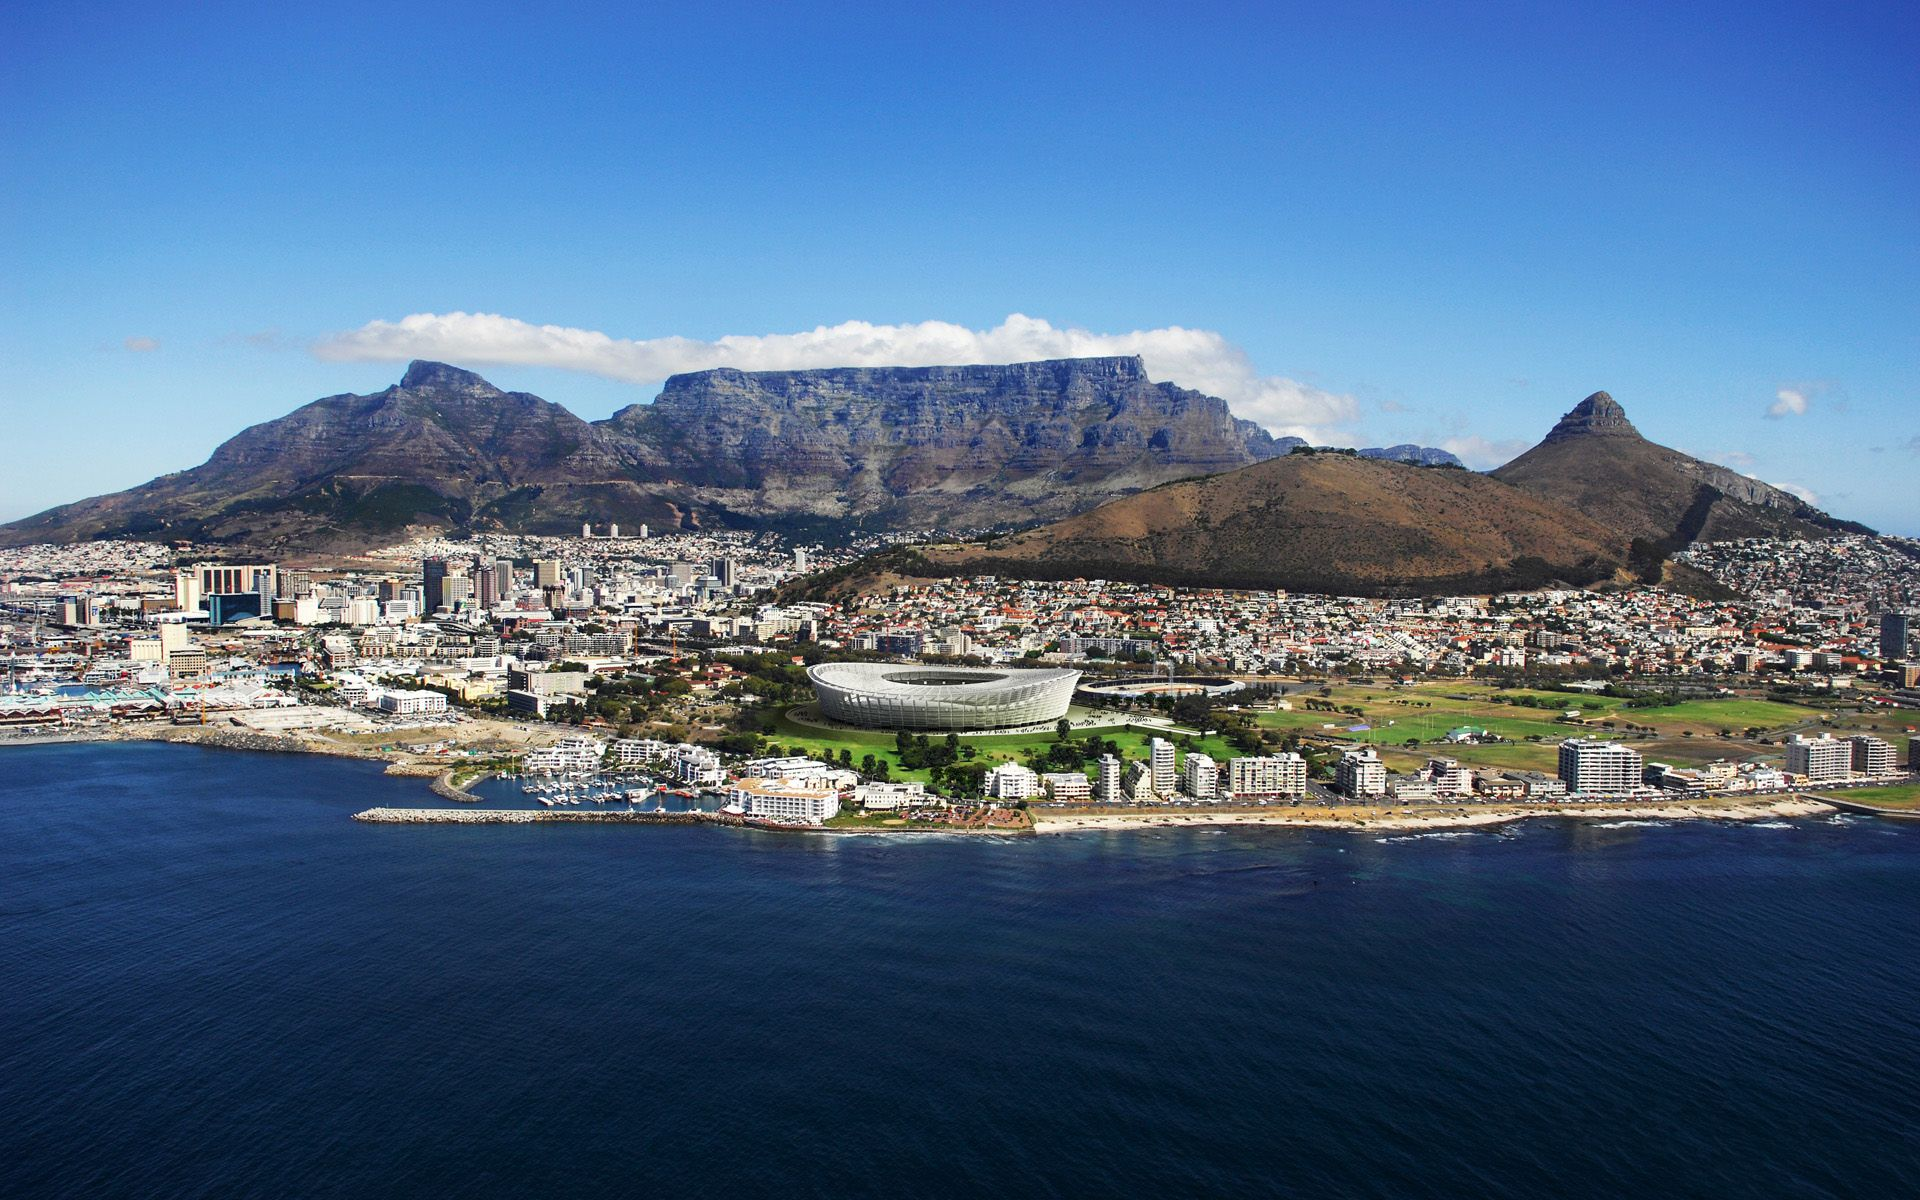 The iconic Table Mountain, so named because it's shape resembles that of a long table, in Cape Town, South Africa stands at the foot of the city and has become one of the 7 Wonders of the World